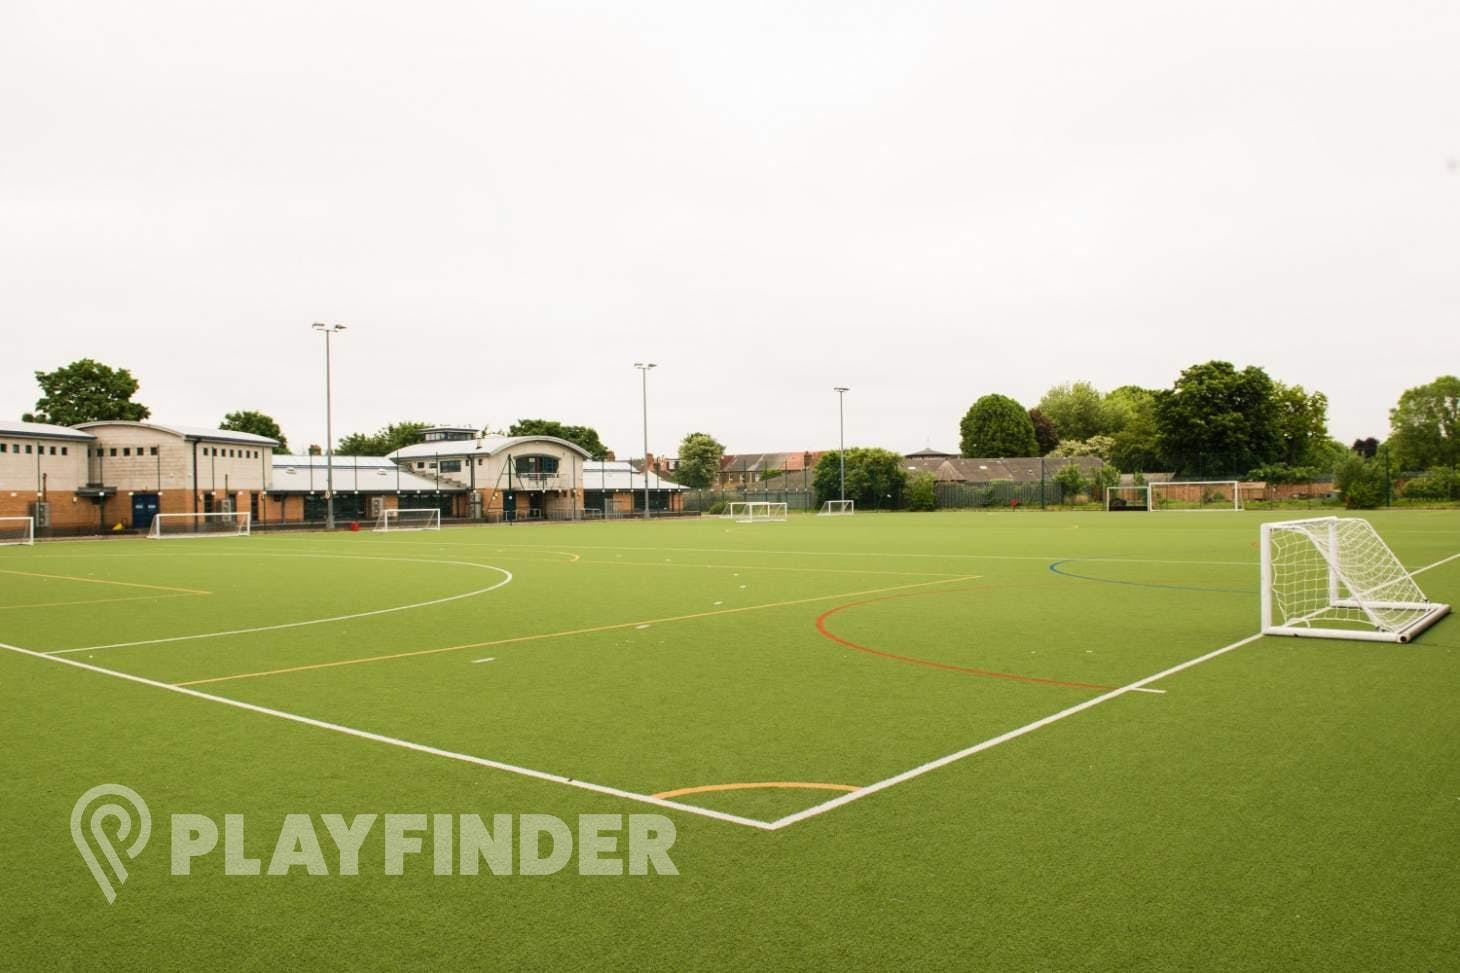 Featherstone Sports Centre 11 a side | Astroturf football pitch